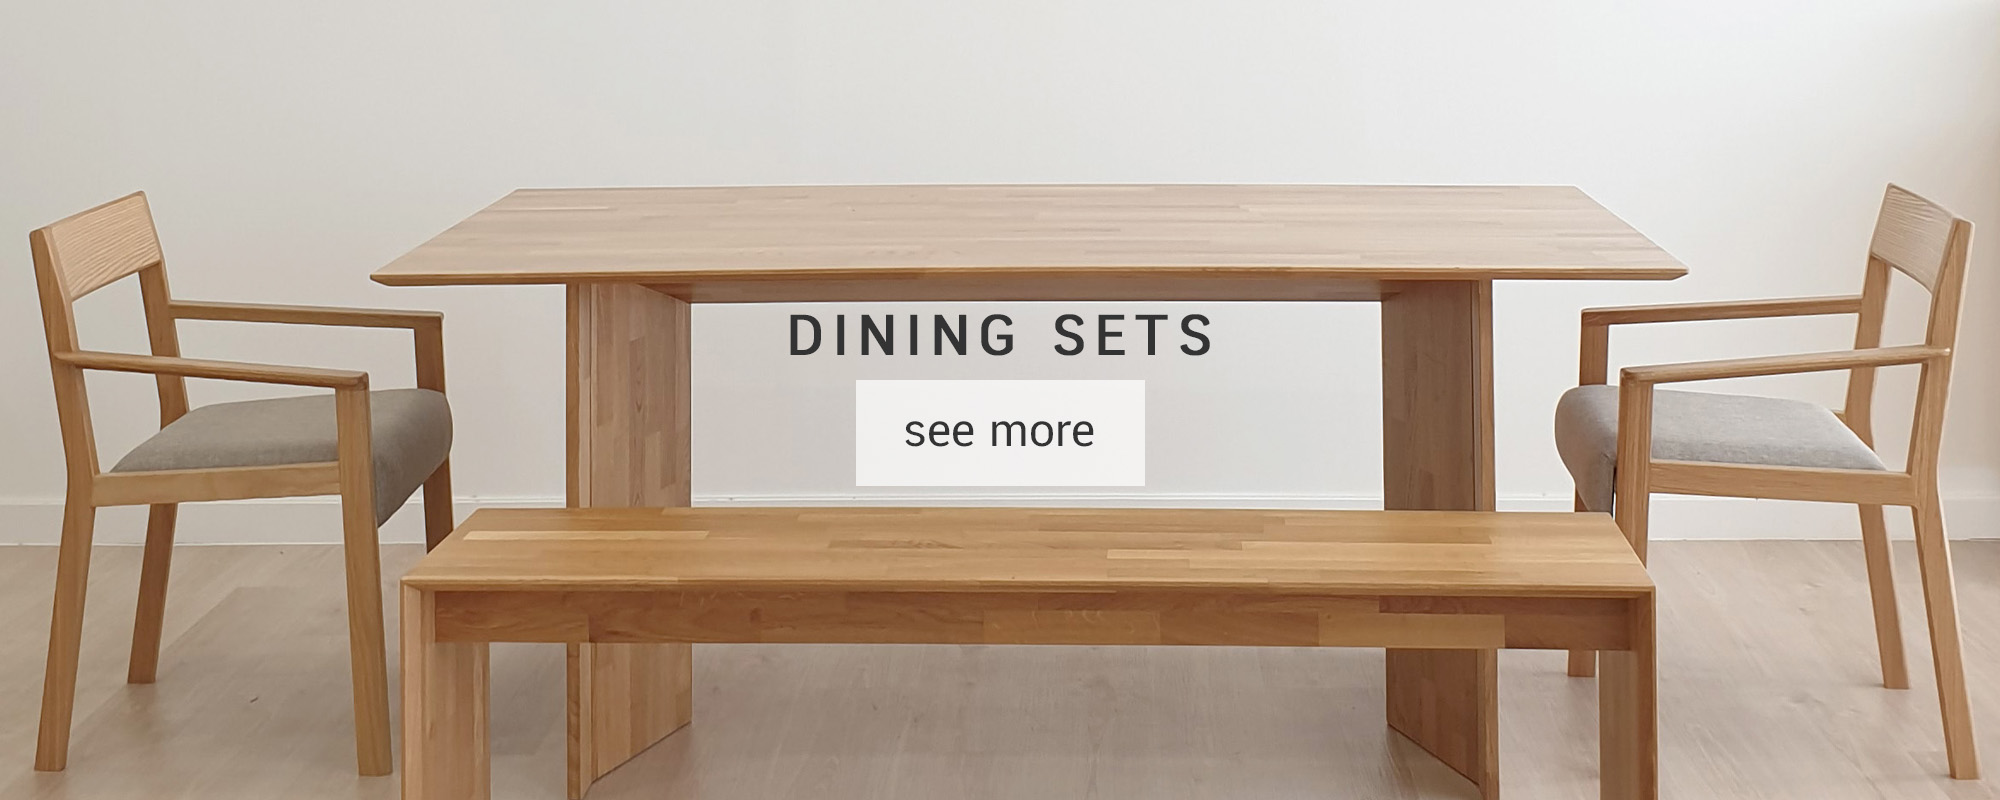 Dining covers